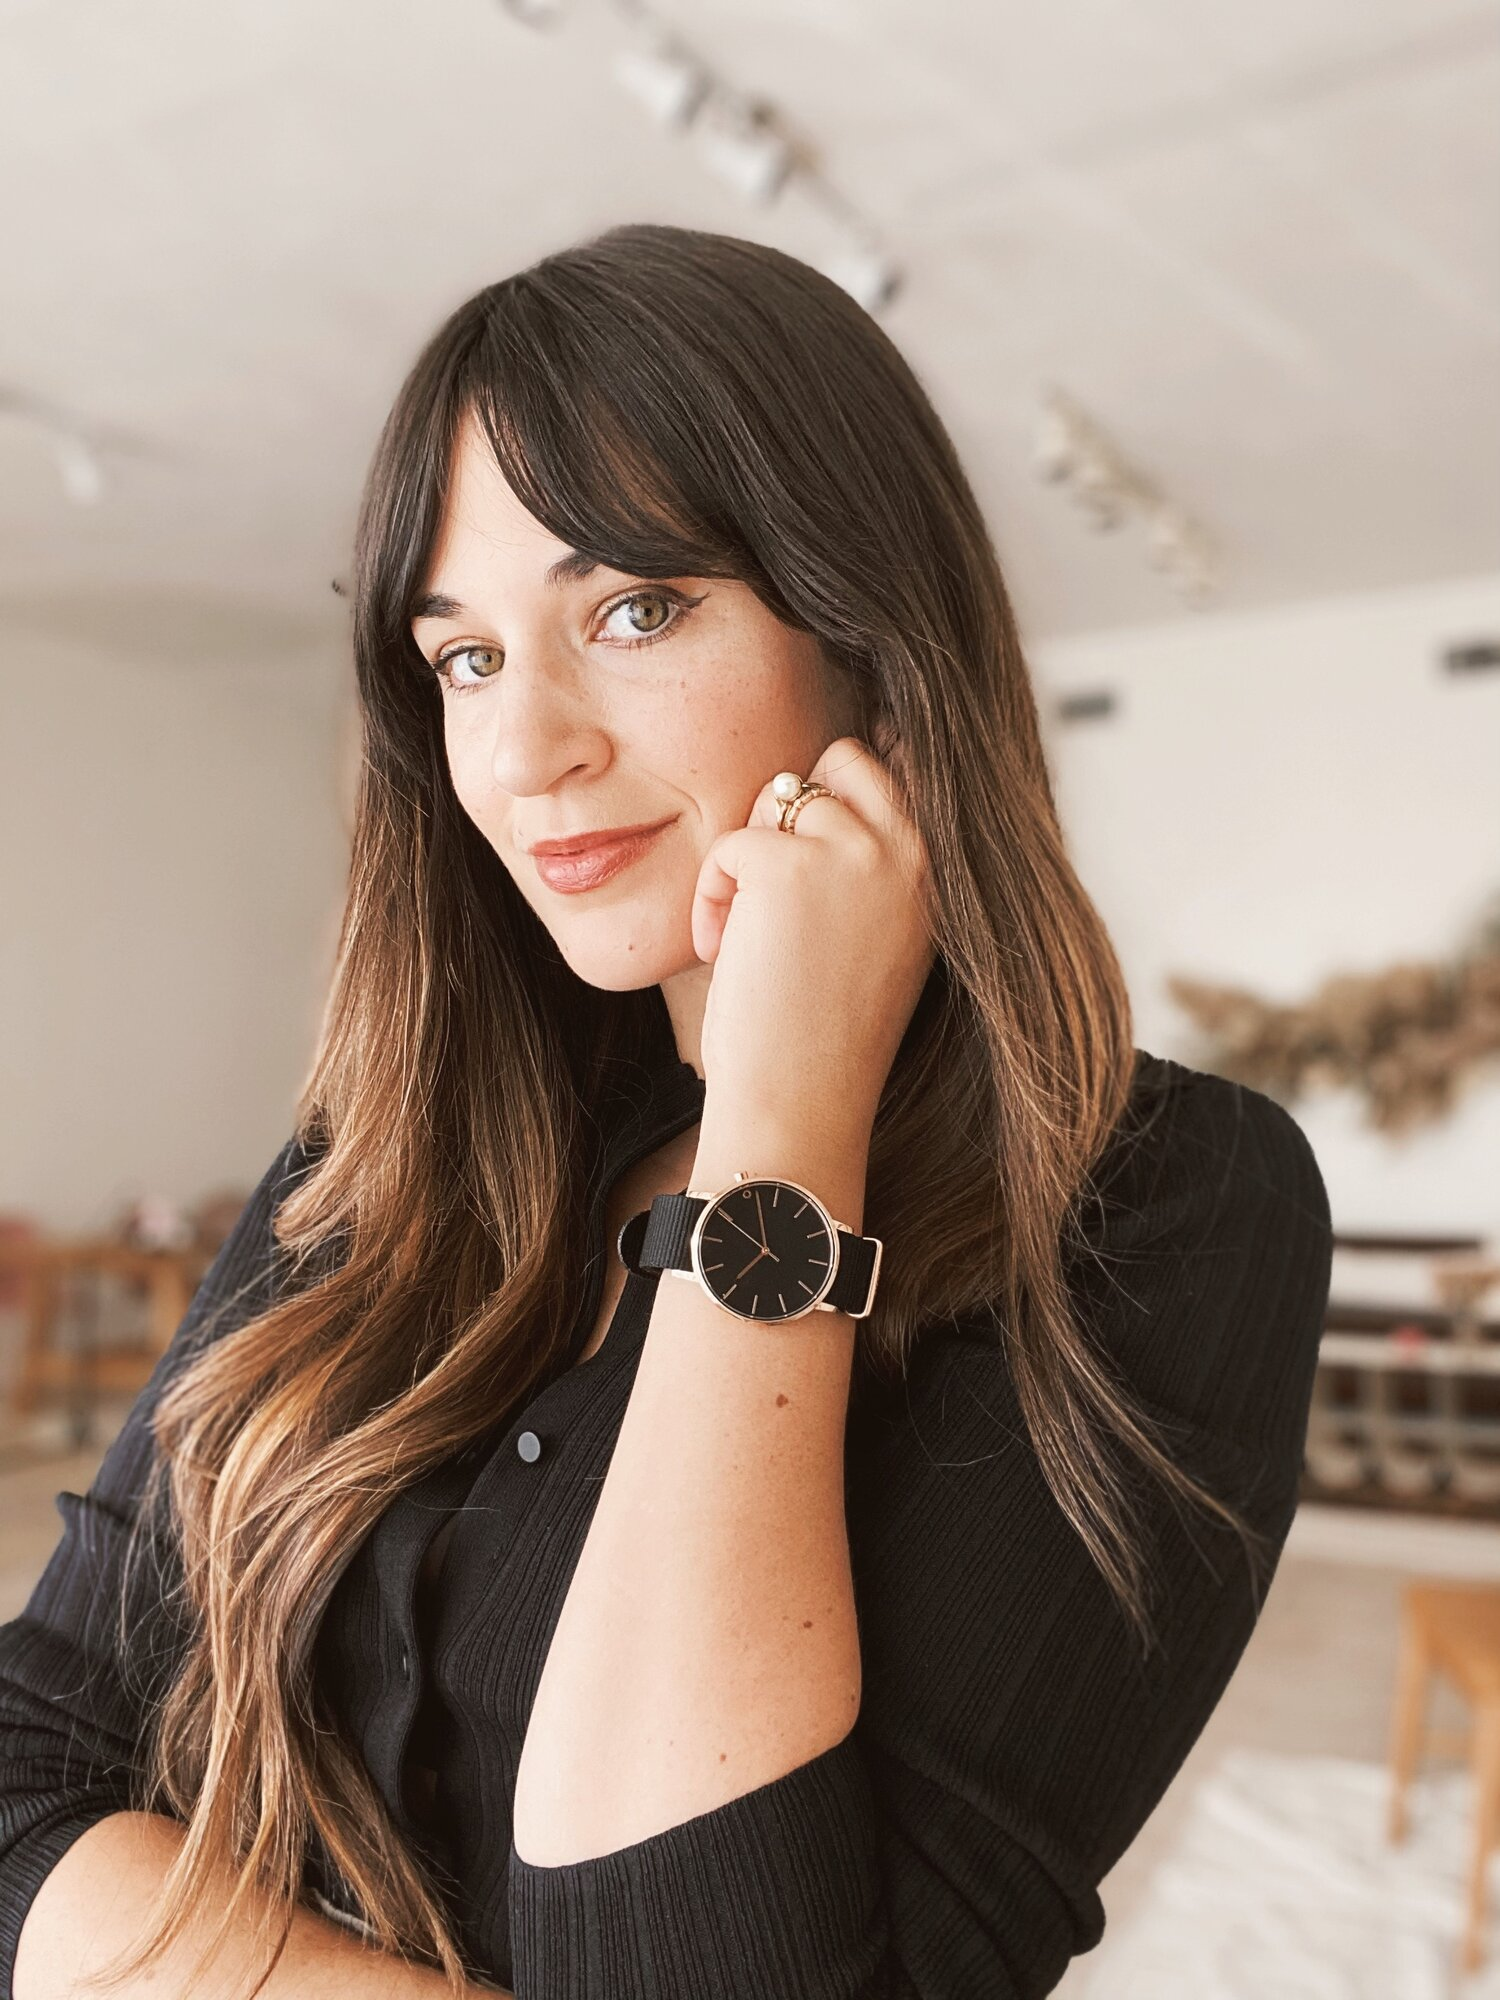 A Sustainable, Versatile Watch that Takes Care of Our Planet & Minimizes Our Wardrobe — Sustainably Chic